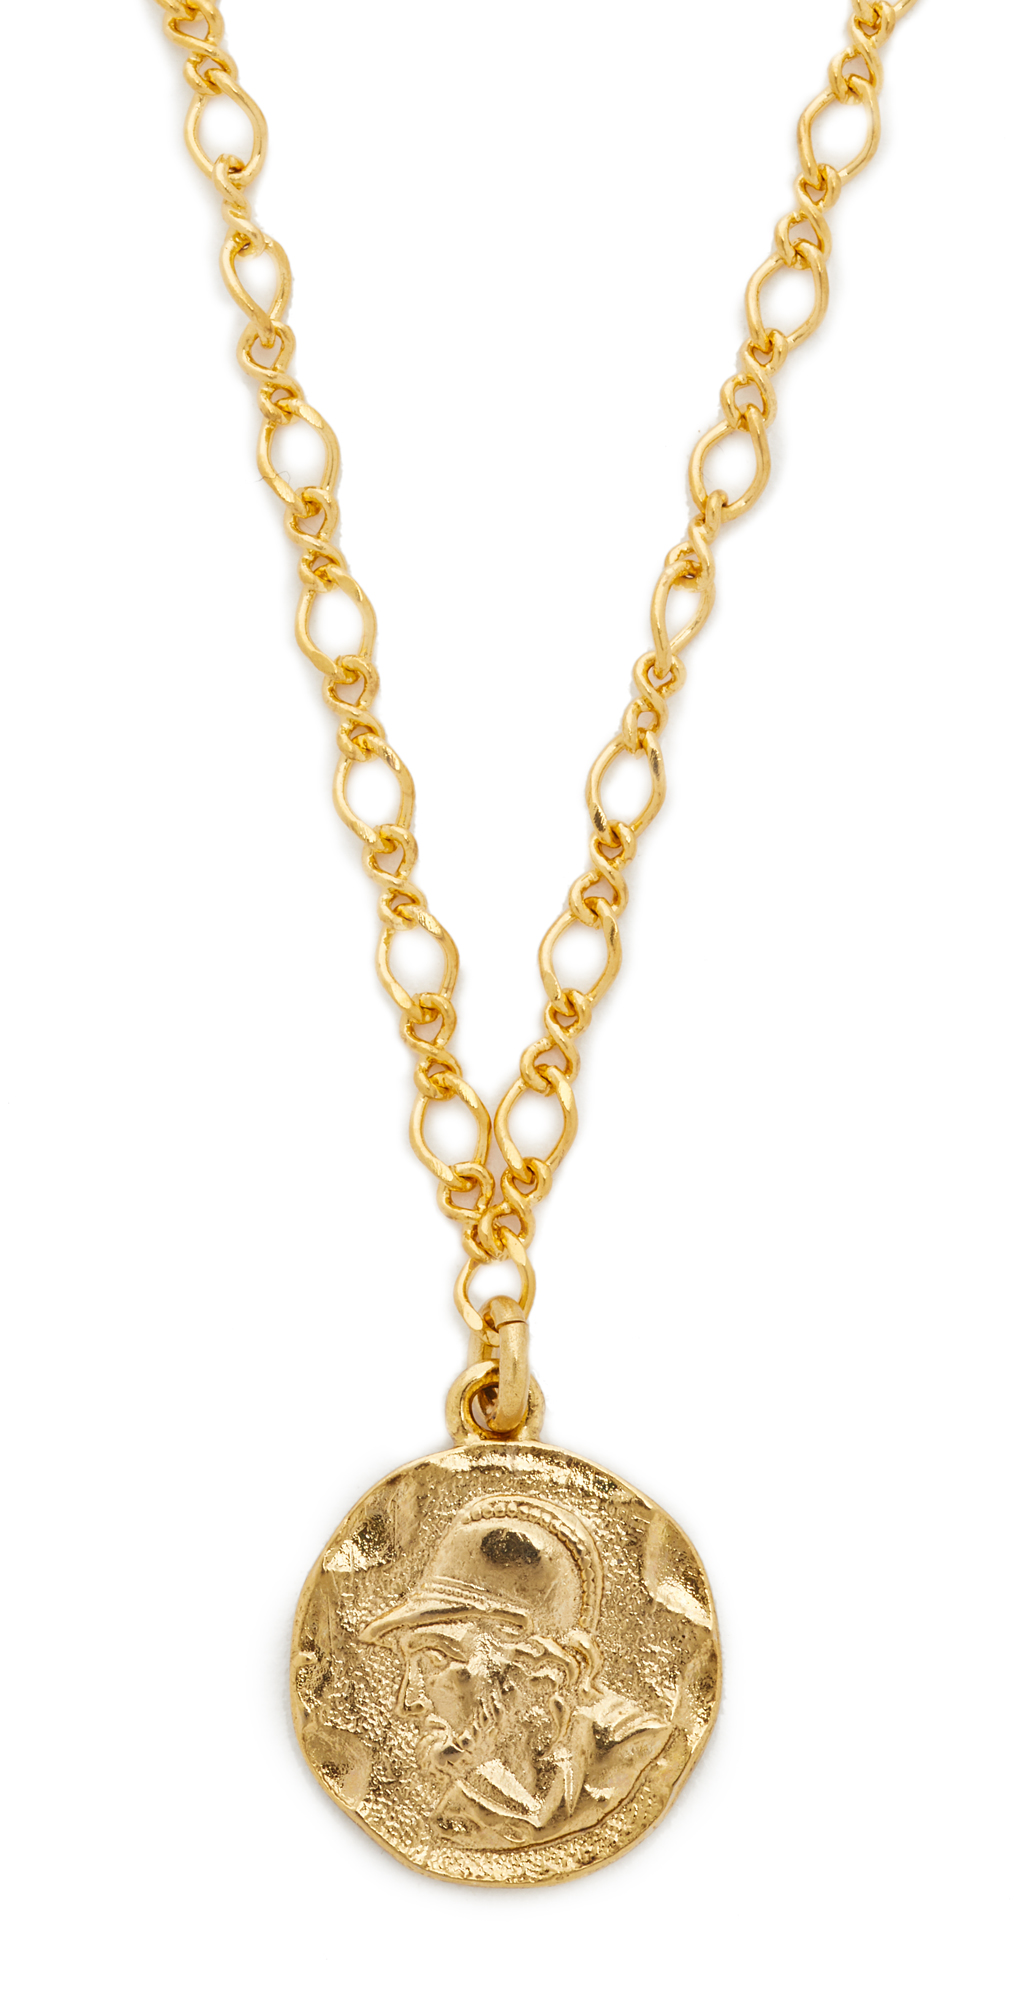 Coin Pendant Necklace Kenneth Jay Lane